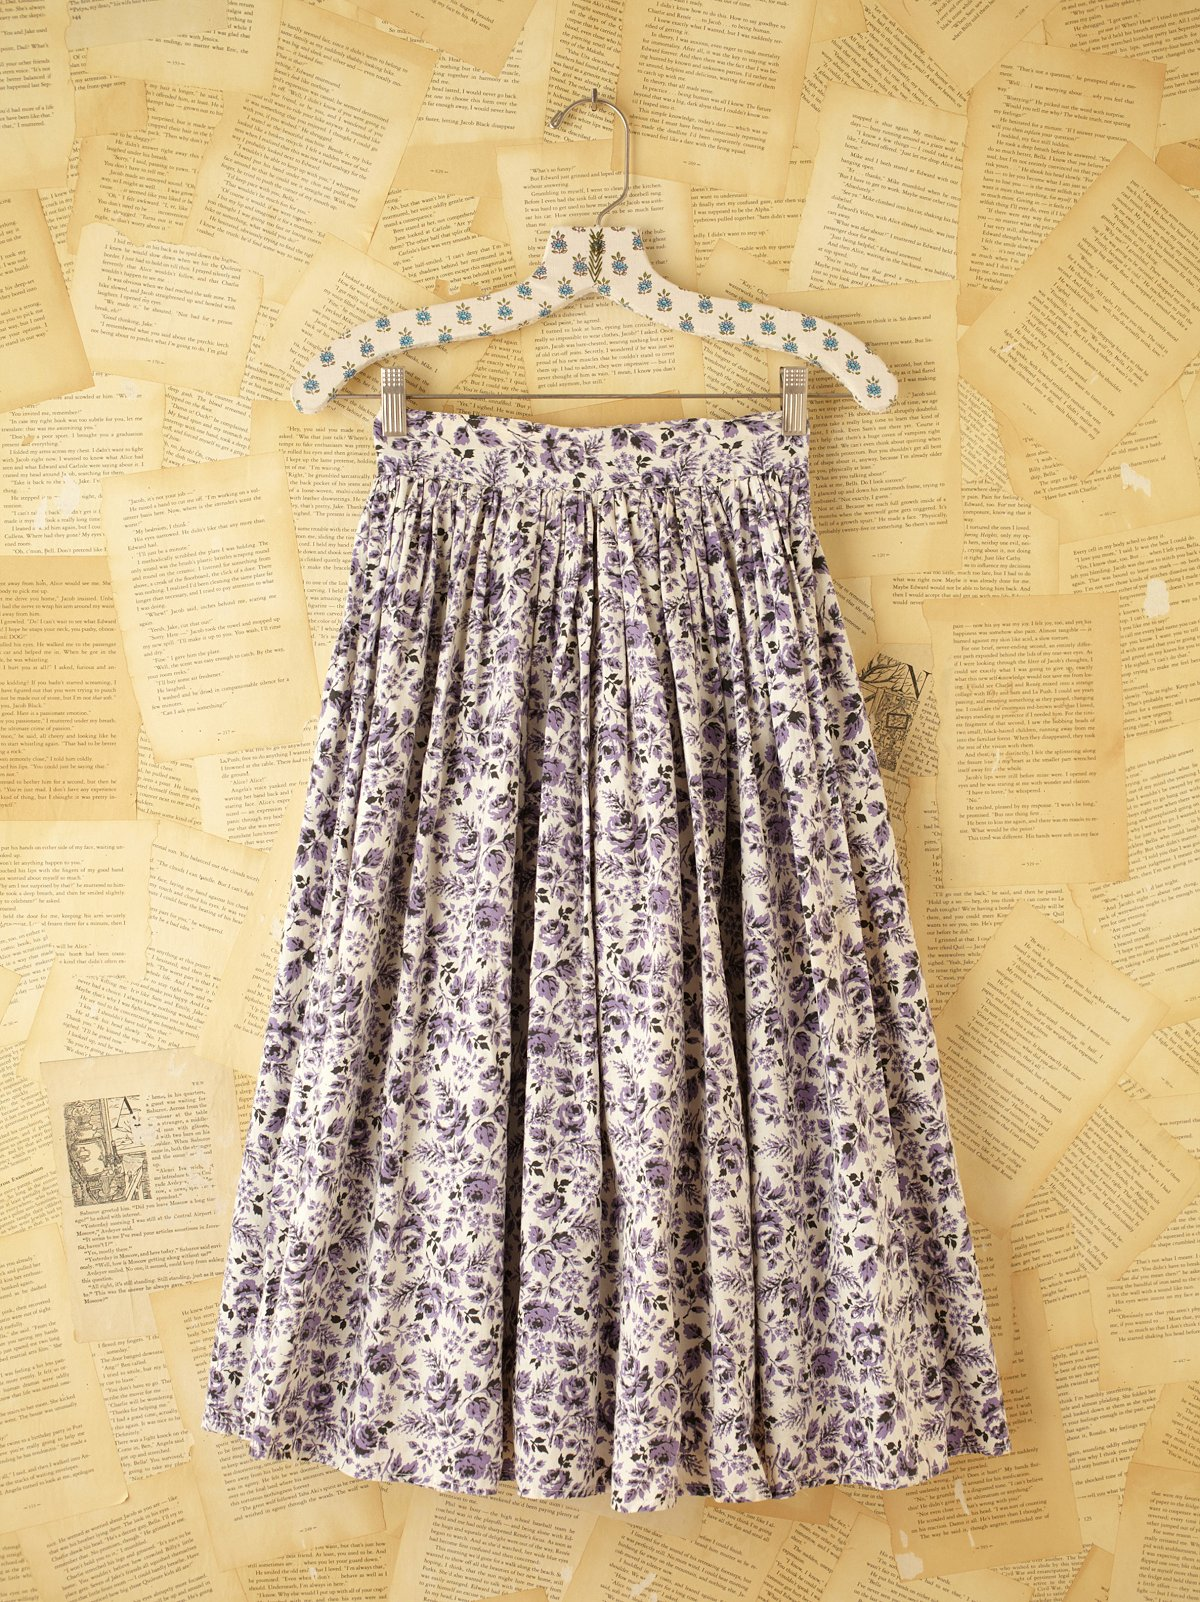 Vintage Knee Length Skirt